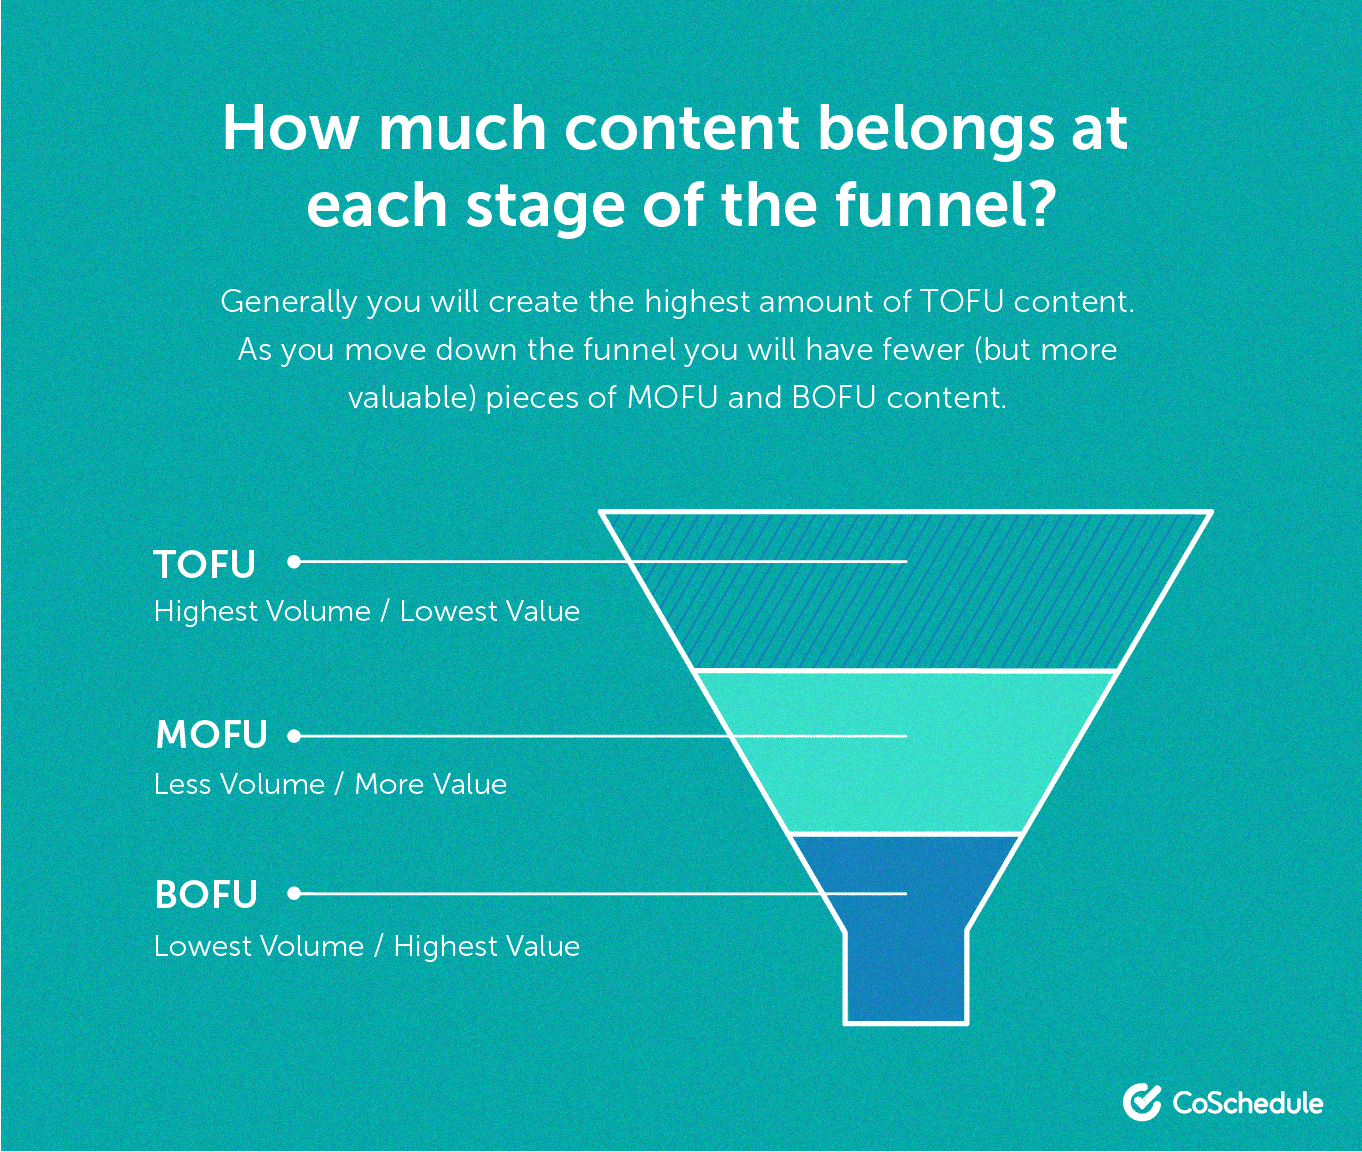 How much content belongs in each stage of the funnel?